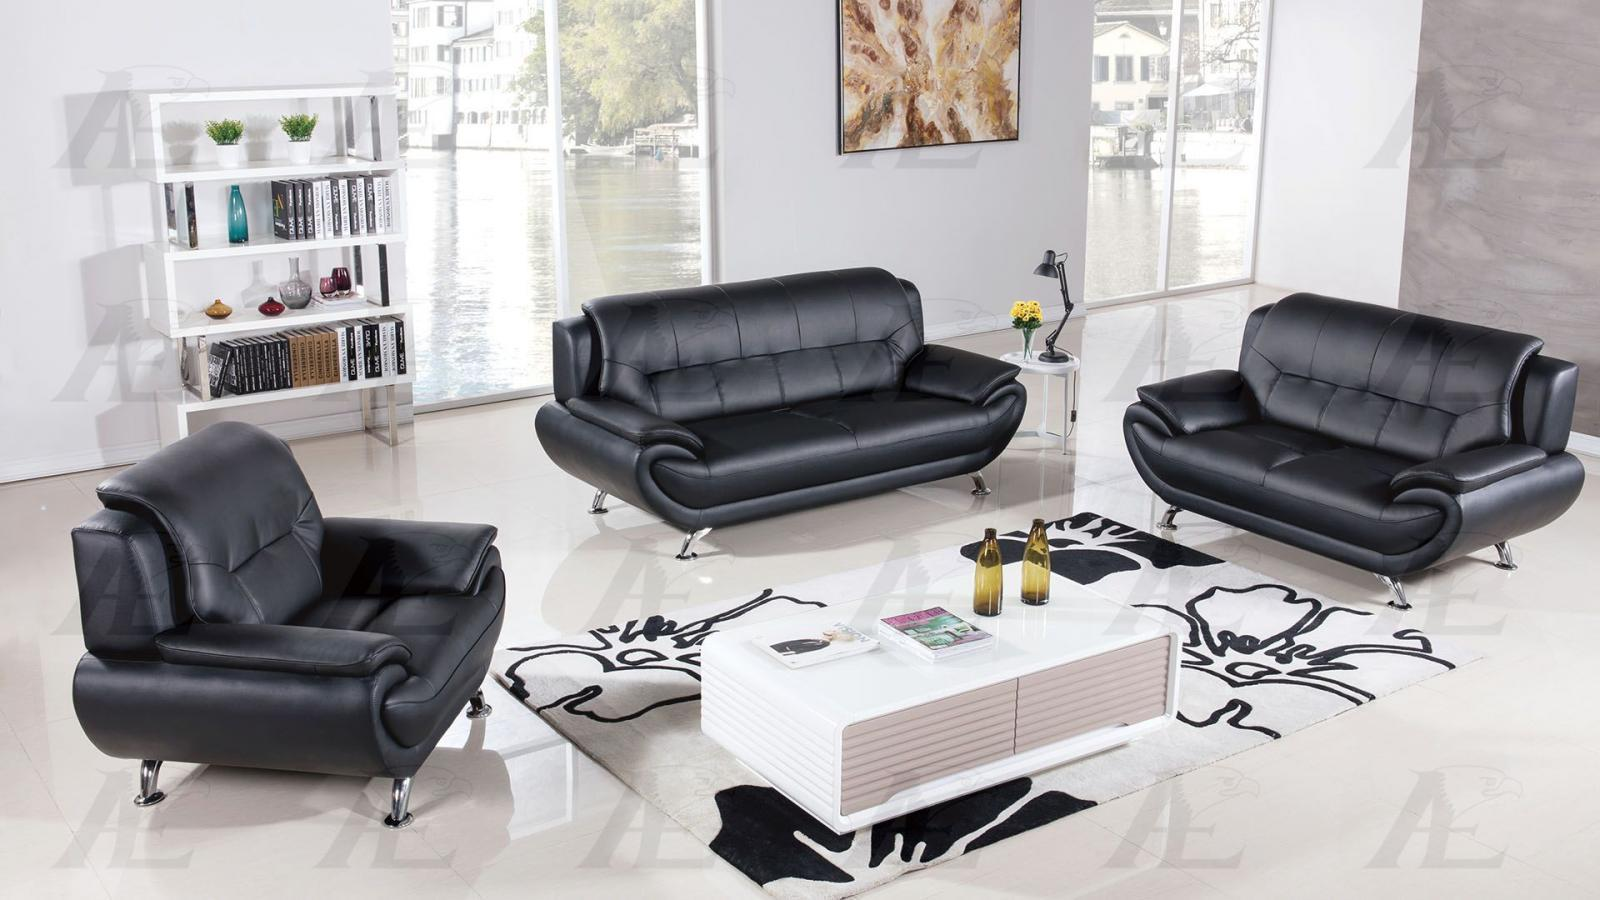 American Eagle AE208 Sofa Loveseat Chair Set Leatherette 3pc Modern Contemporary